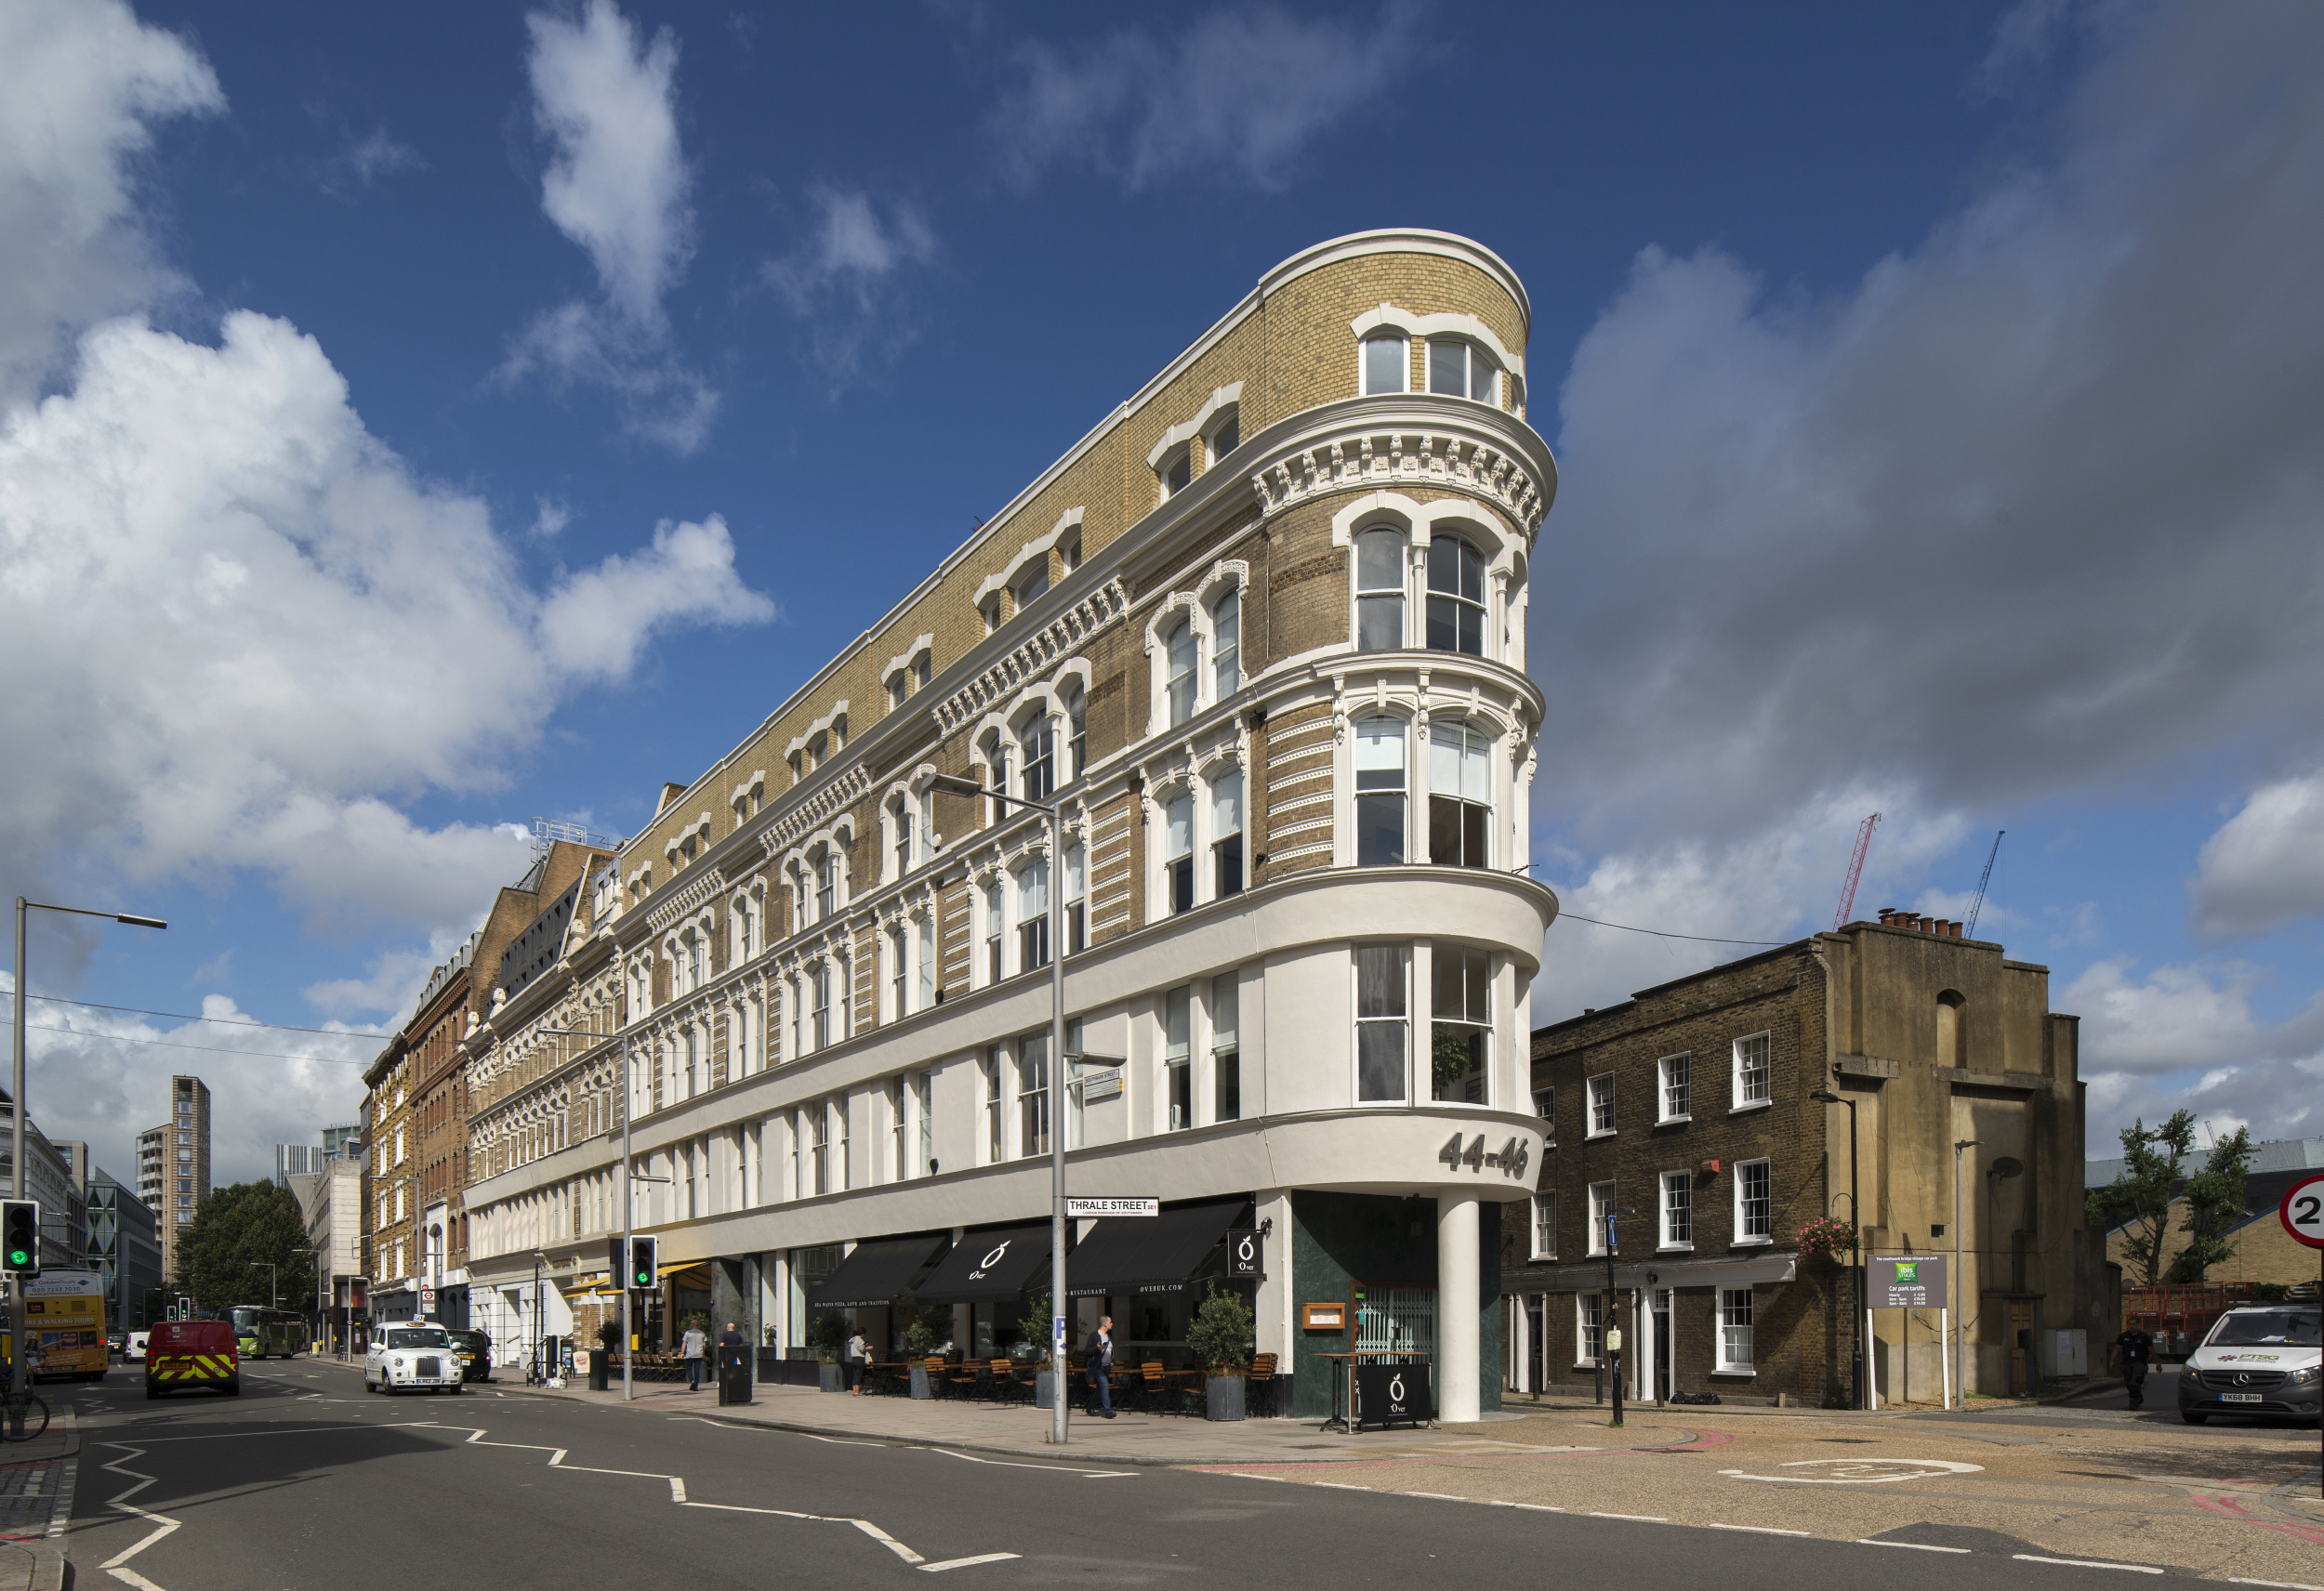 Photo of The Flat Iron Building, 44-46 Southwark Street